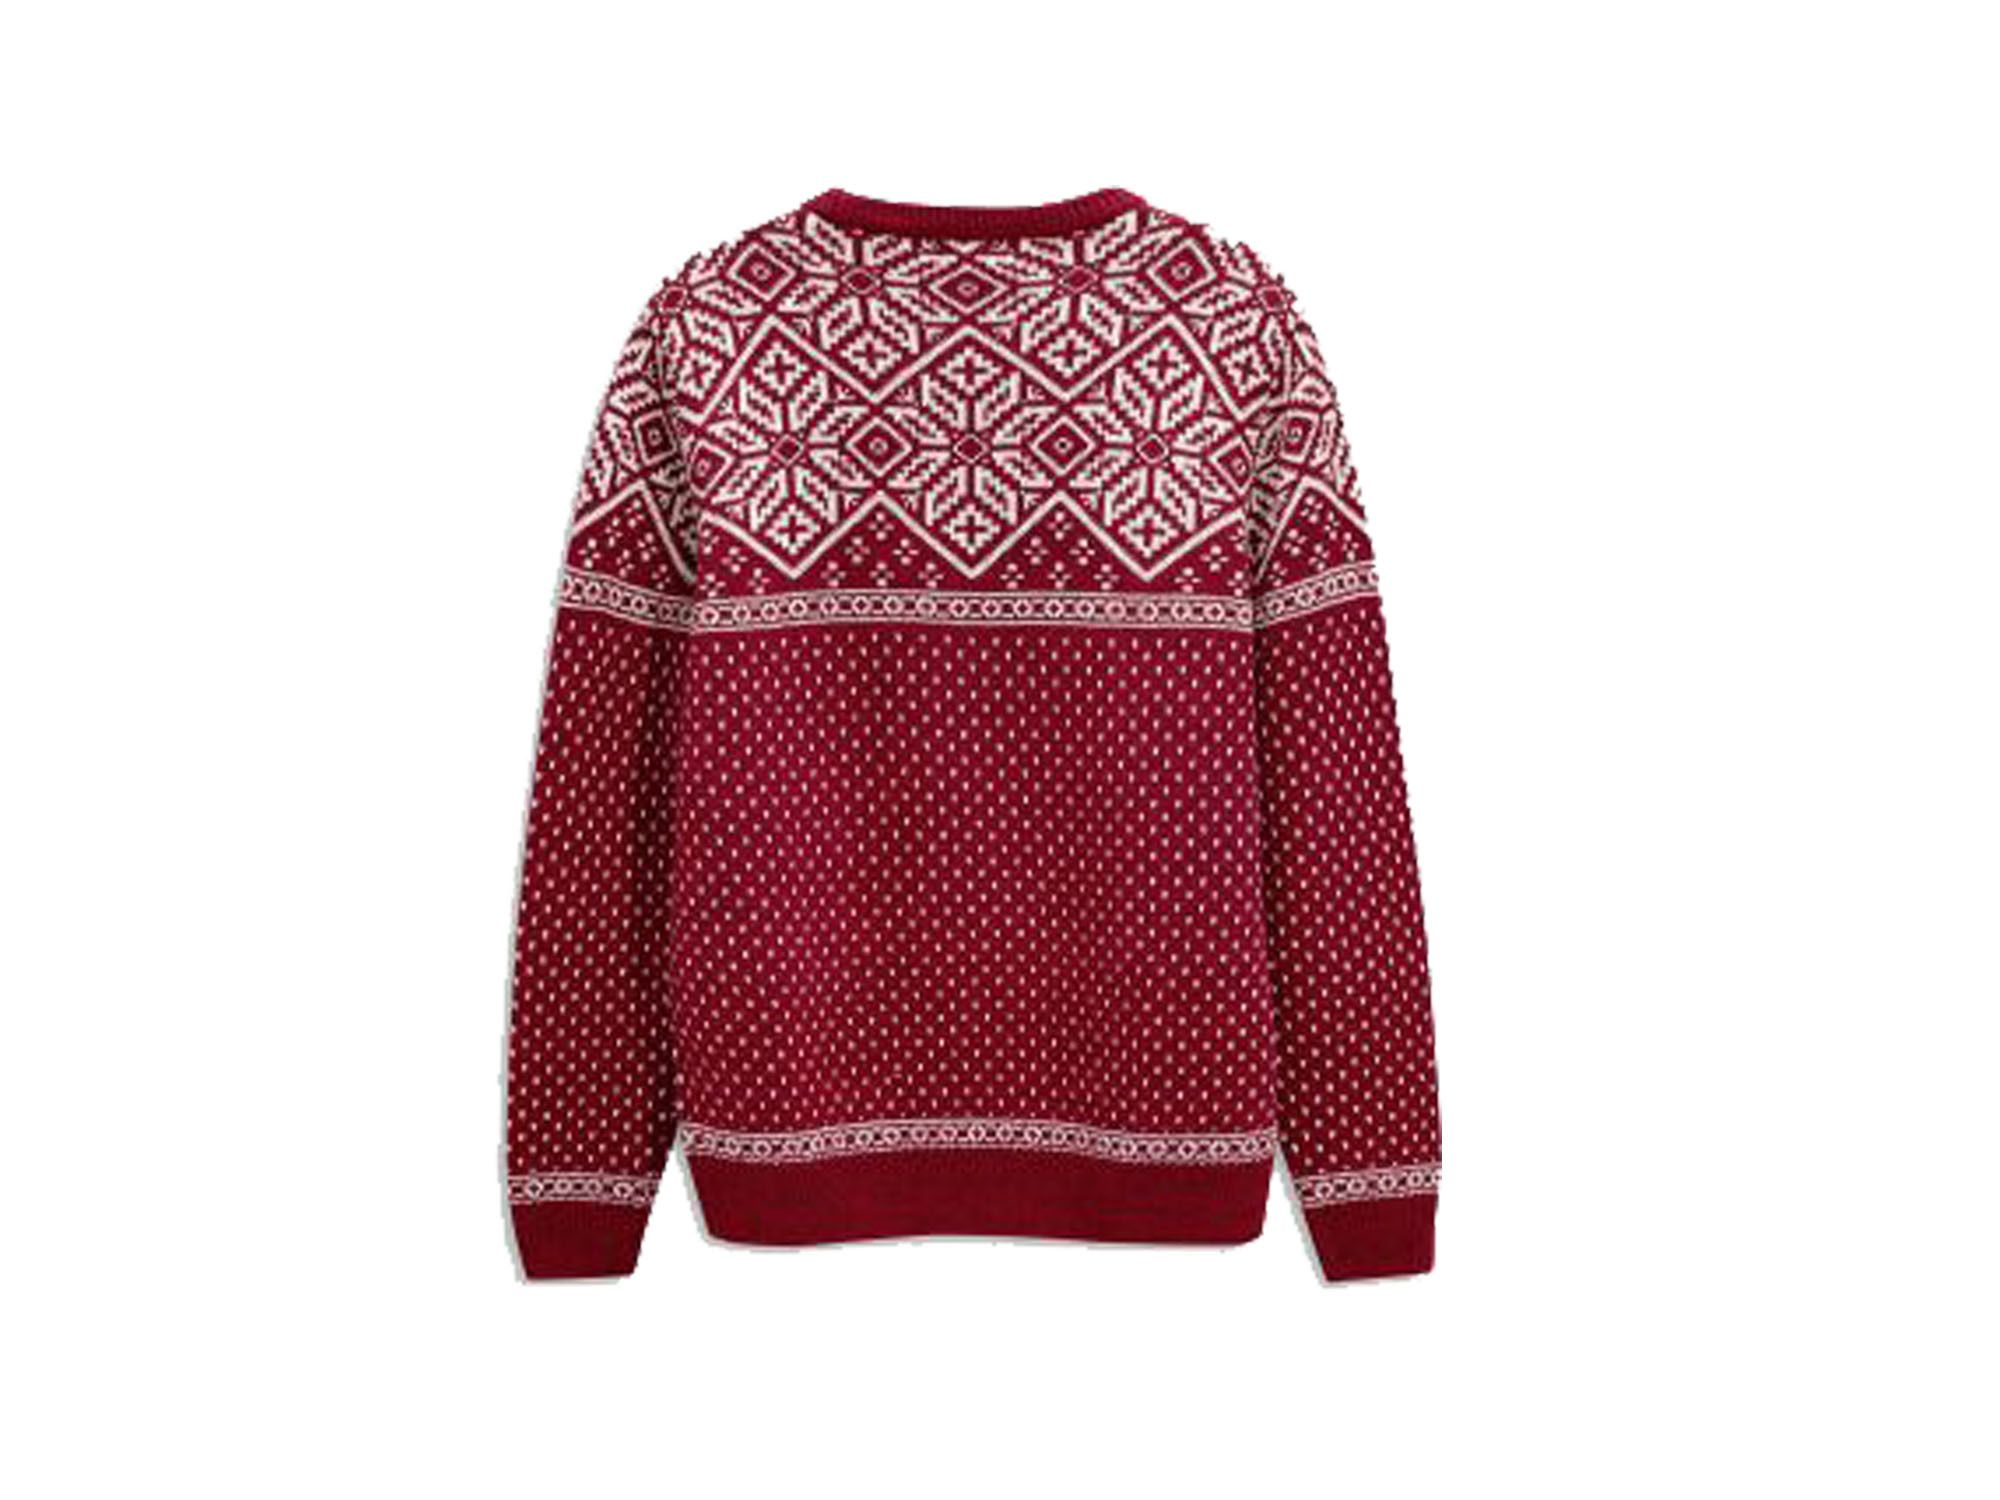 Next Christmas Jumpers.Christmas Jumpers You Ll Actually Want To Wear